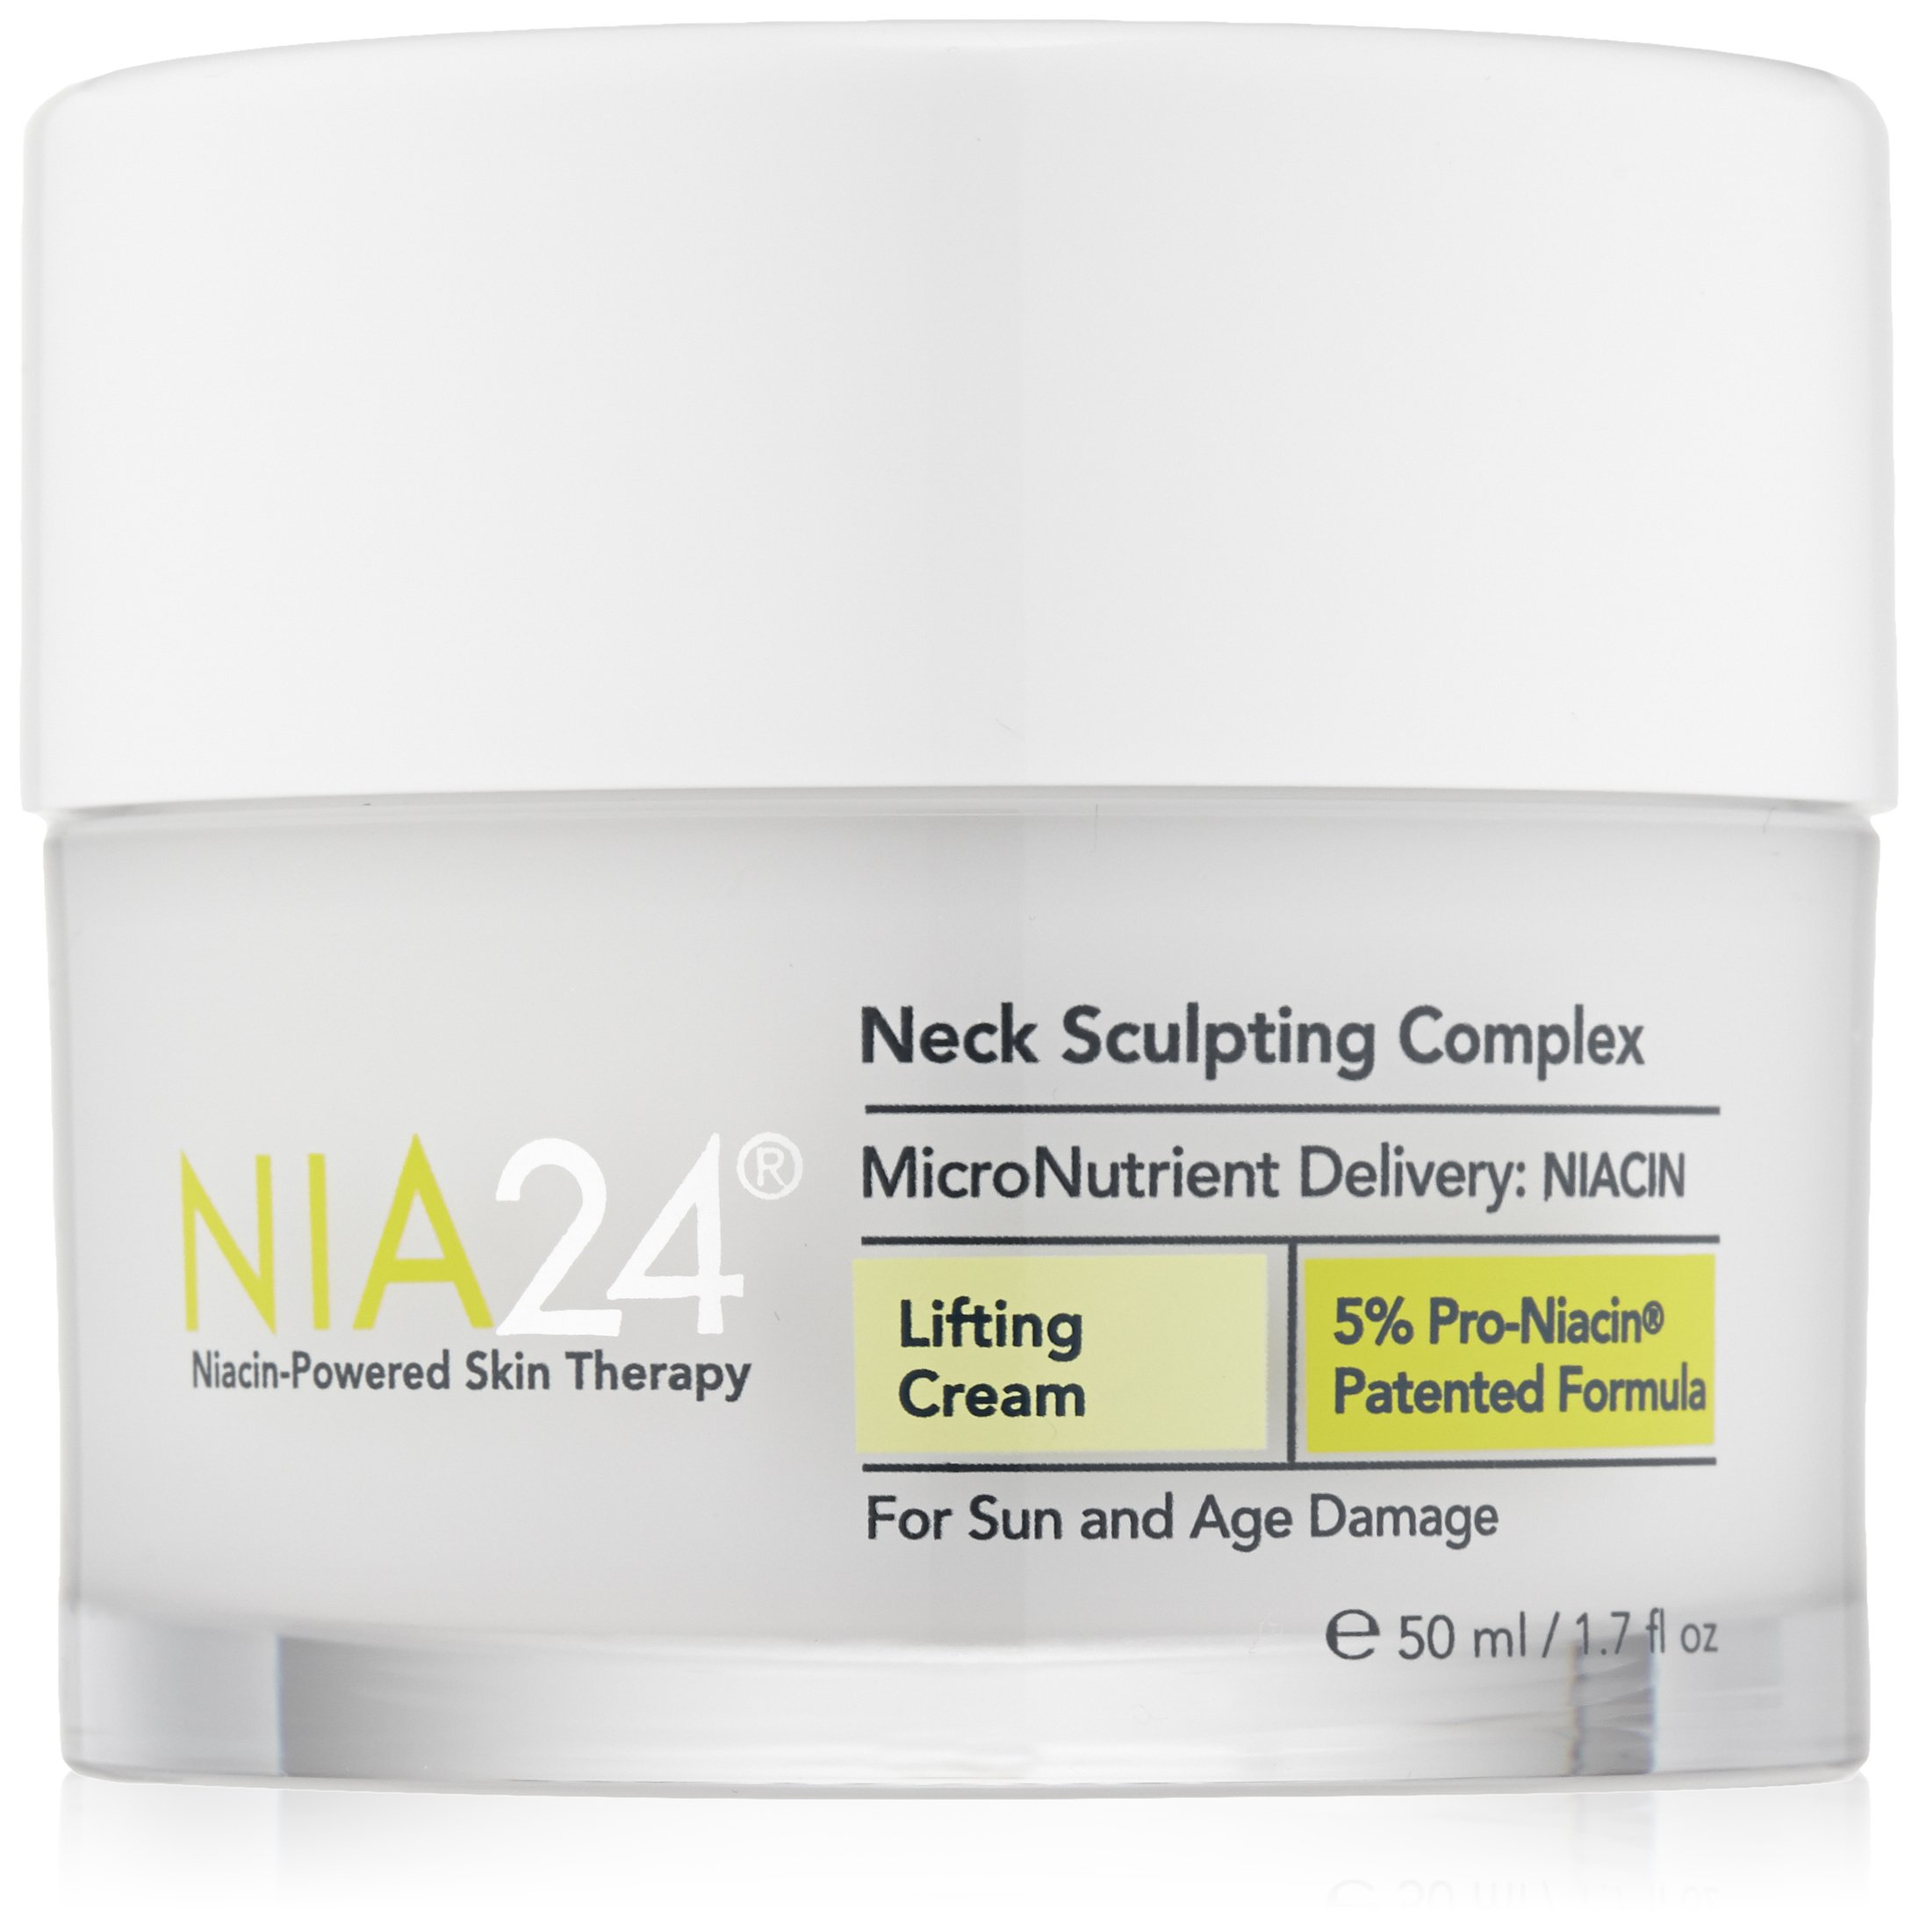 Nia 24 Neck Sculpting Complex, 1.7 Fl. oz.